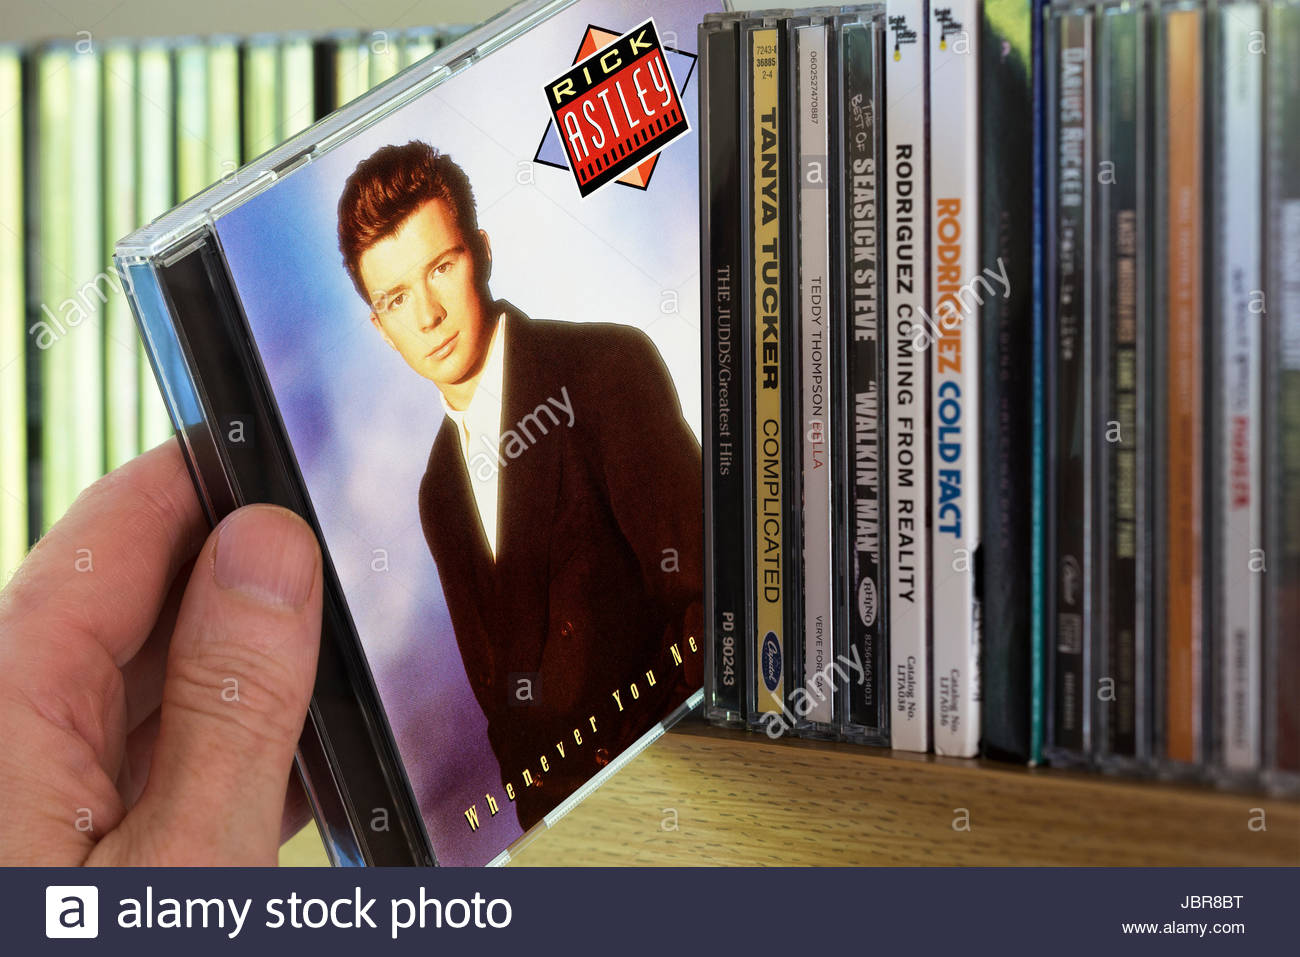 Whenever You Need Somebody, 1987 Rick Astley CD being chosen from a shelf of other CD's, Dorset, England - Stock Image